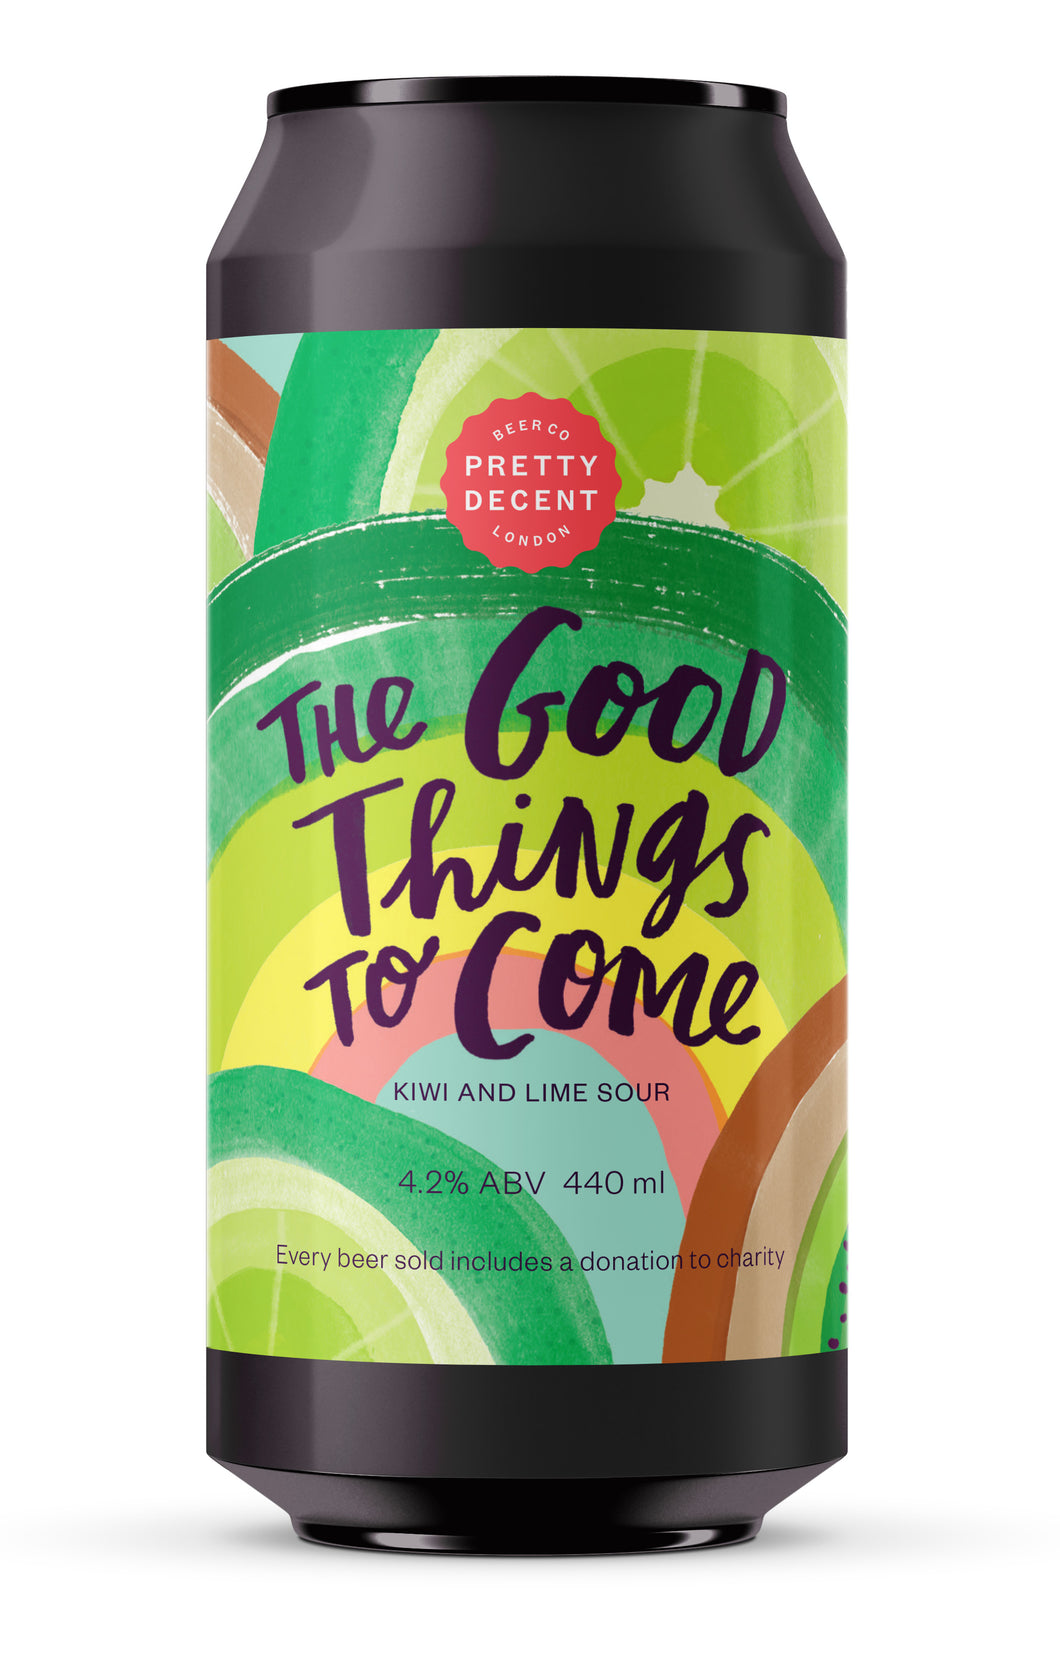 'The Good Things to Come' International Women's Day Collaboration Brew - Kiwi and Lime Sour (4.2%)